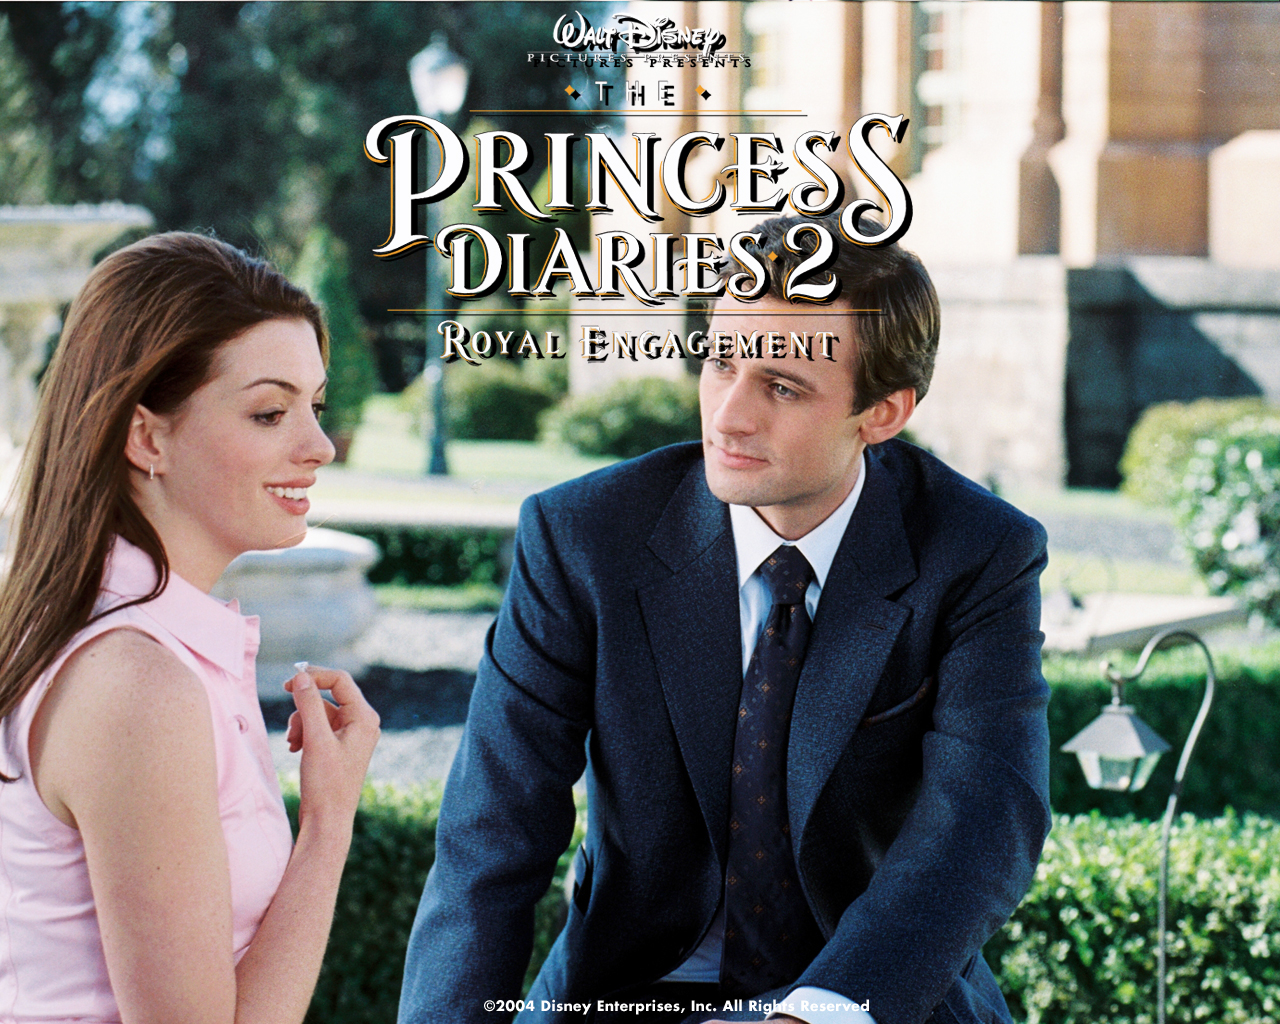 Anne Hathaway in The Princess Diaries 2- Royal Engagement Wallpaper 1280-960